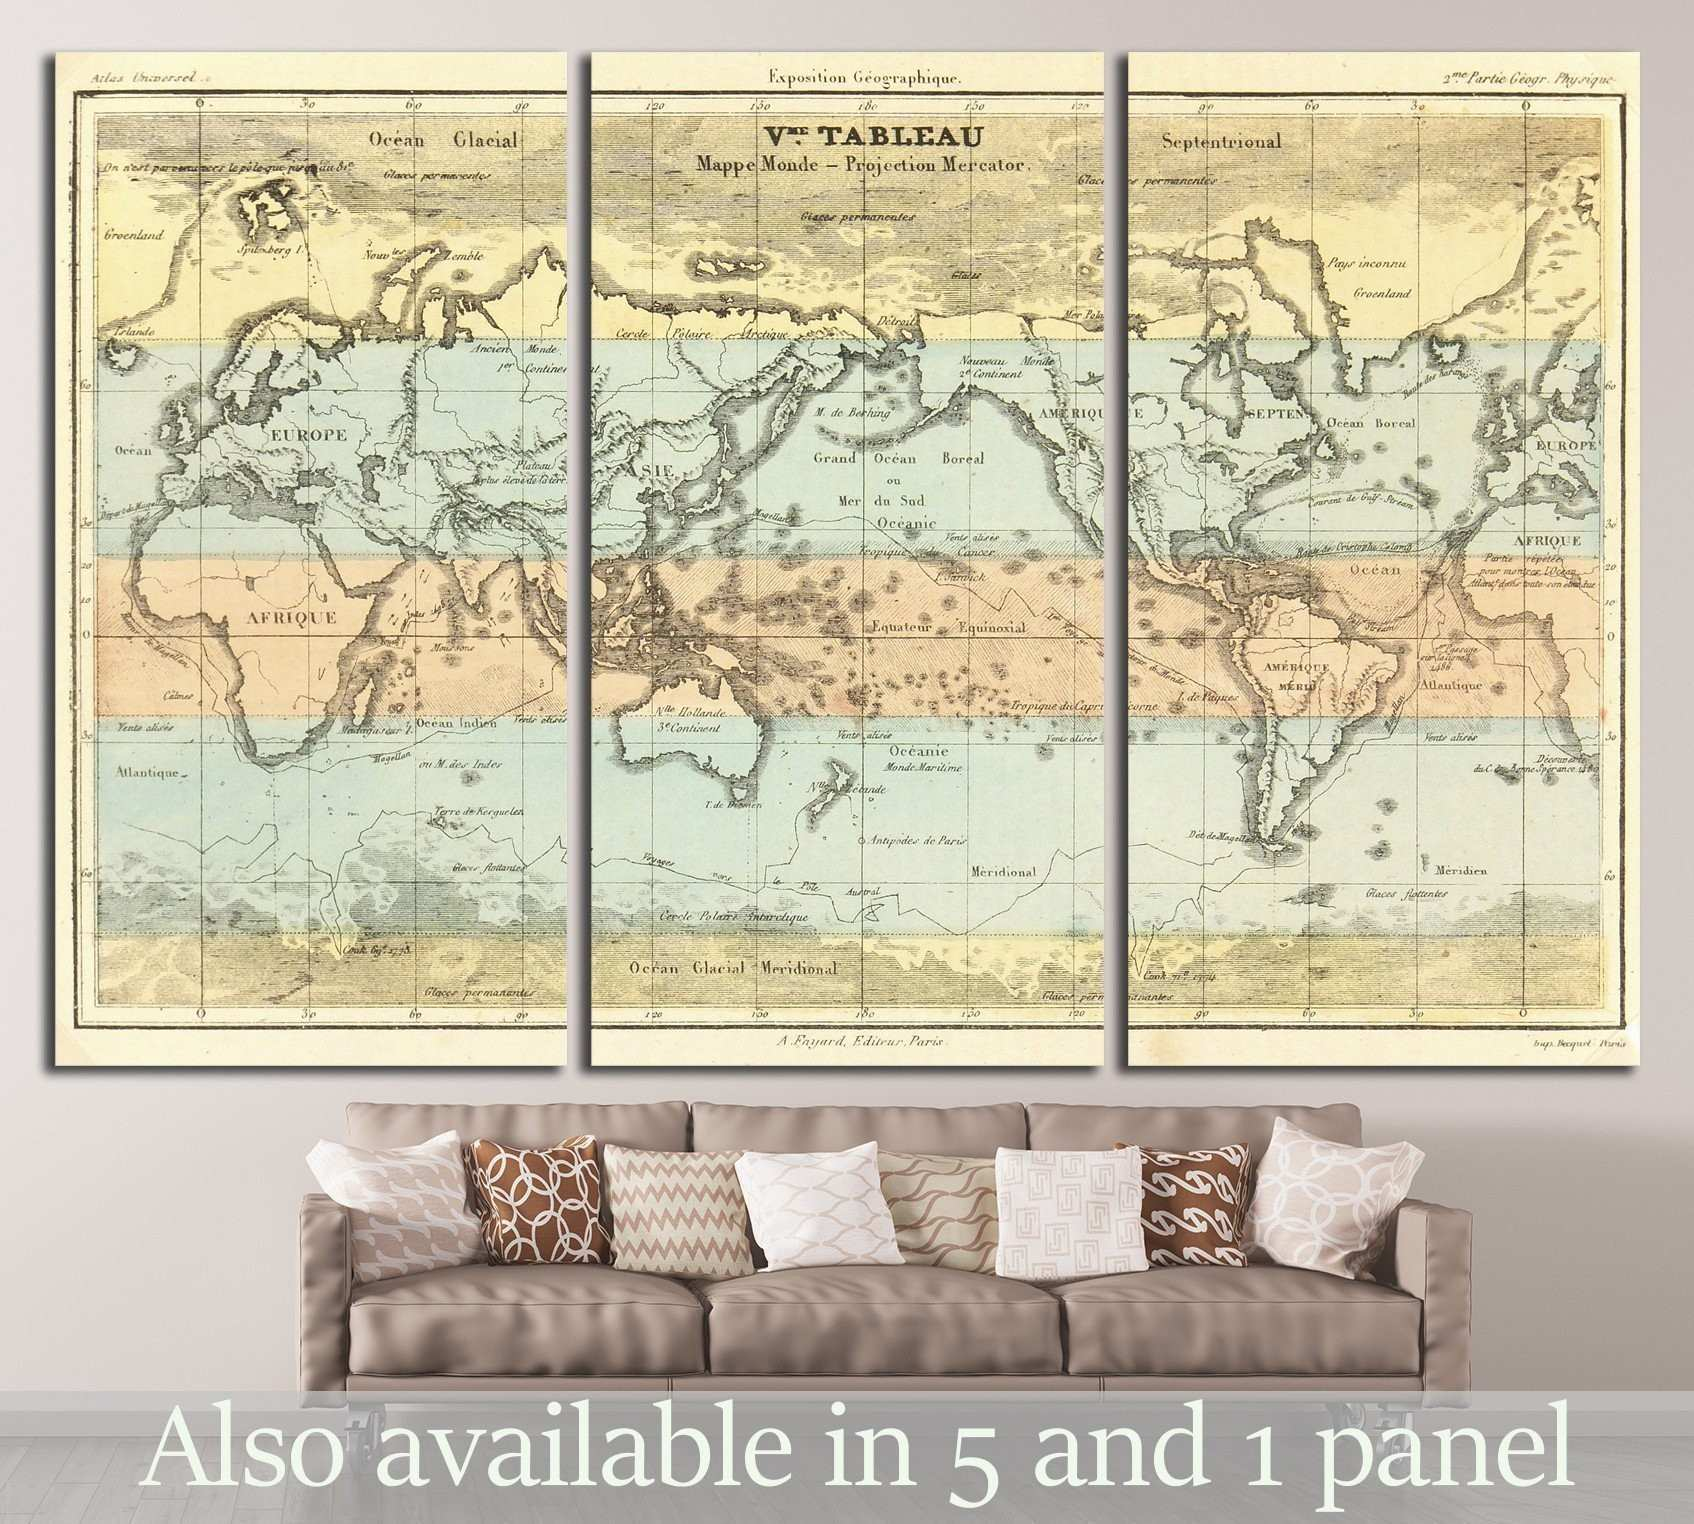 Dorable Atlas Wall Art Elaboration Art & Wall Decor hecatalogfo